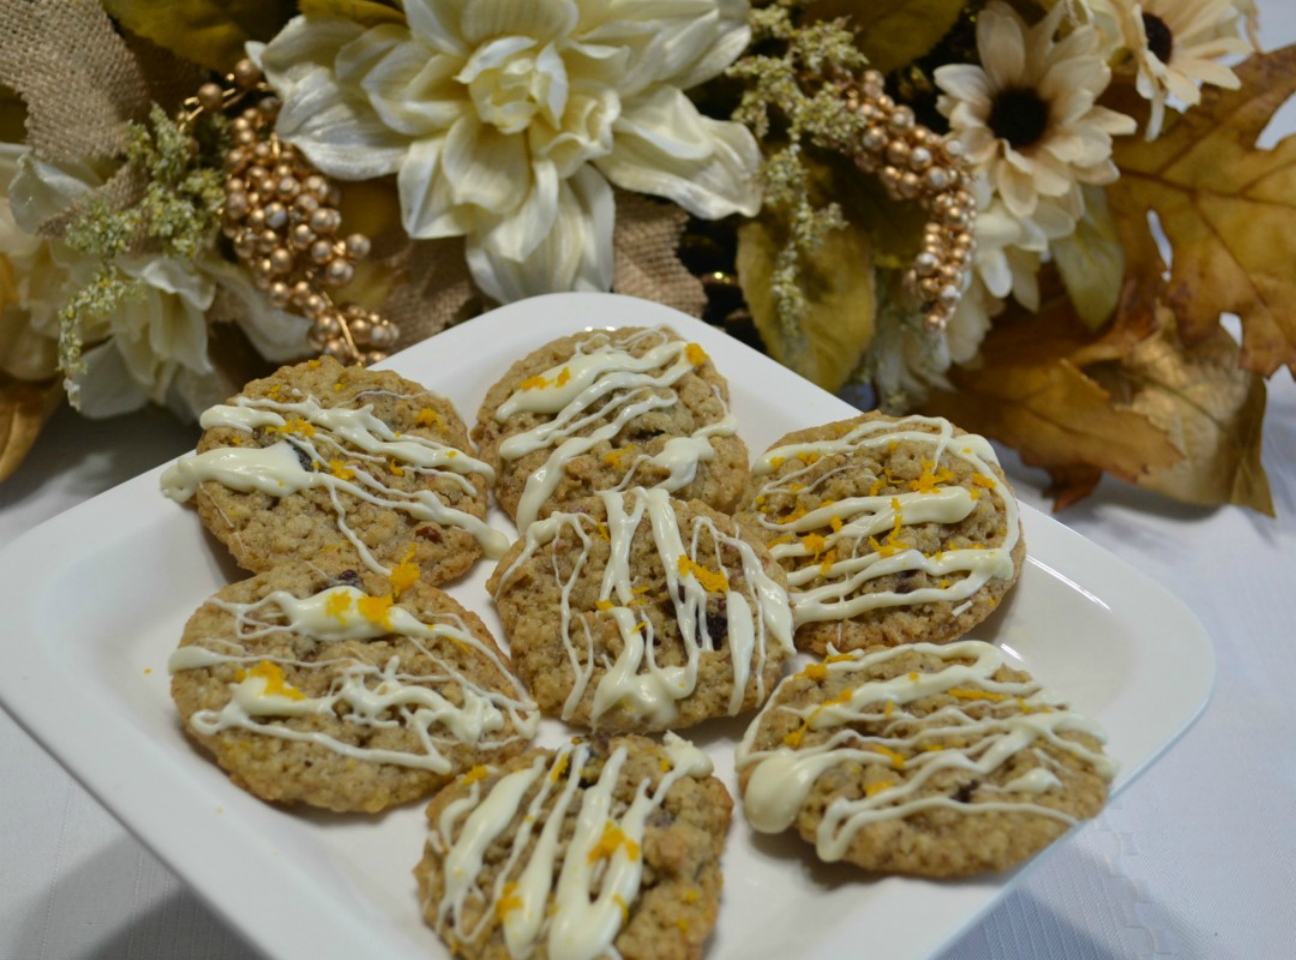 A flavorful oatmeal cookie packed with flavors from cranberry, pecans, and orange zest topped with a melted white chocolate drizzle.